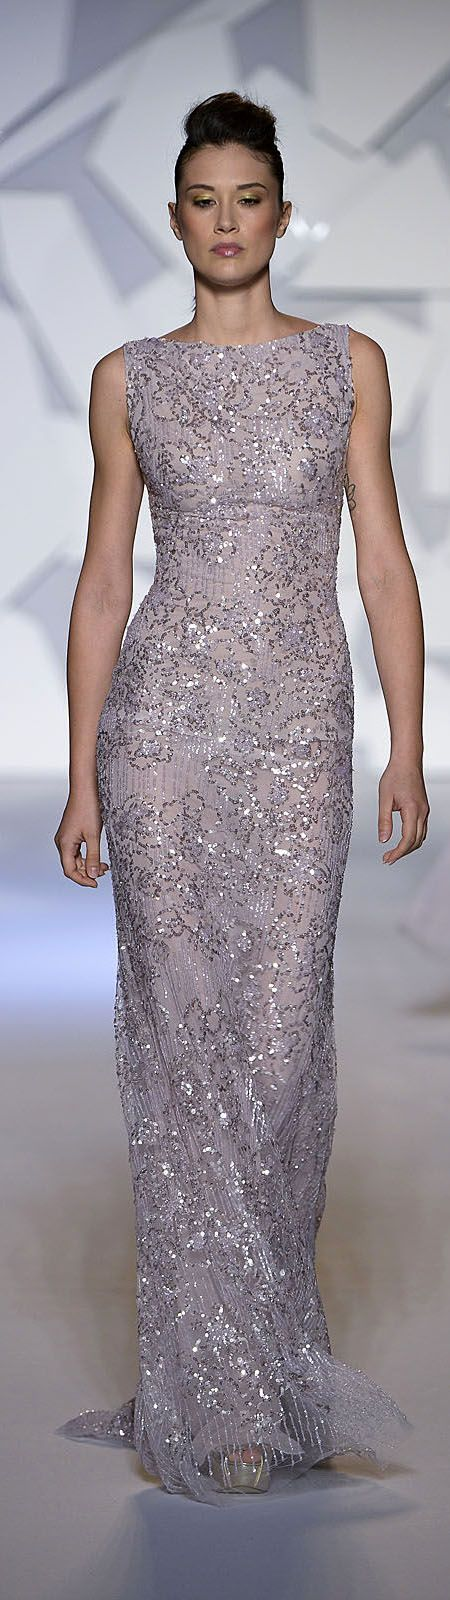 Abed Mahfouz - Couture - Fall-Winter 2014-2015. #Style #Dress